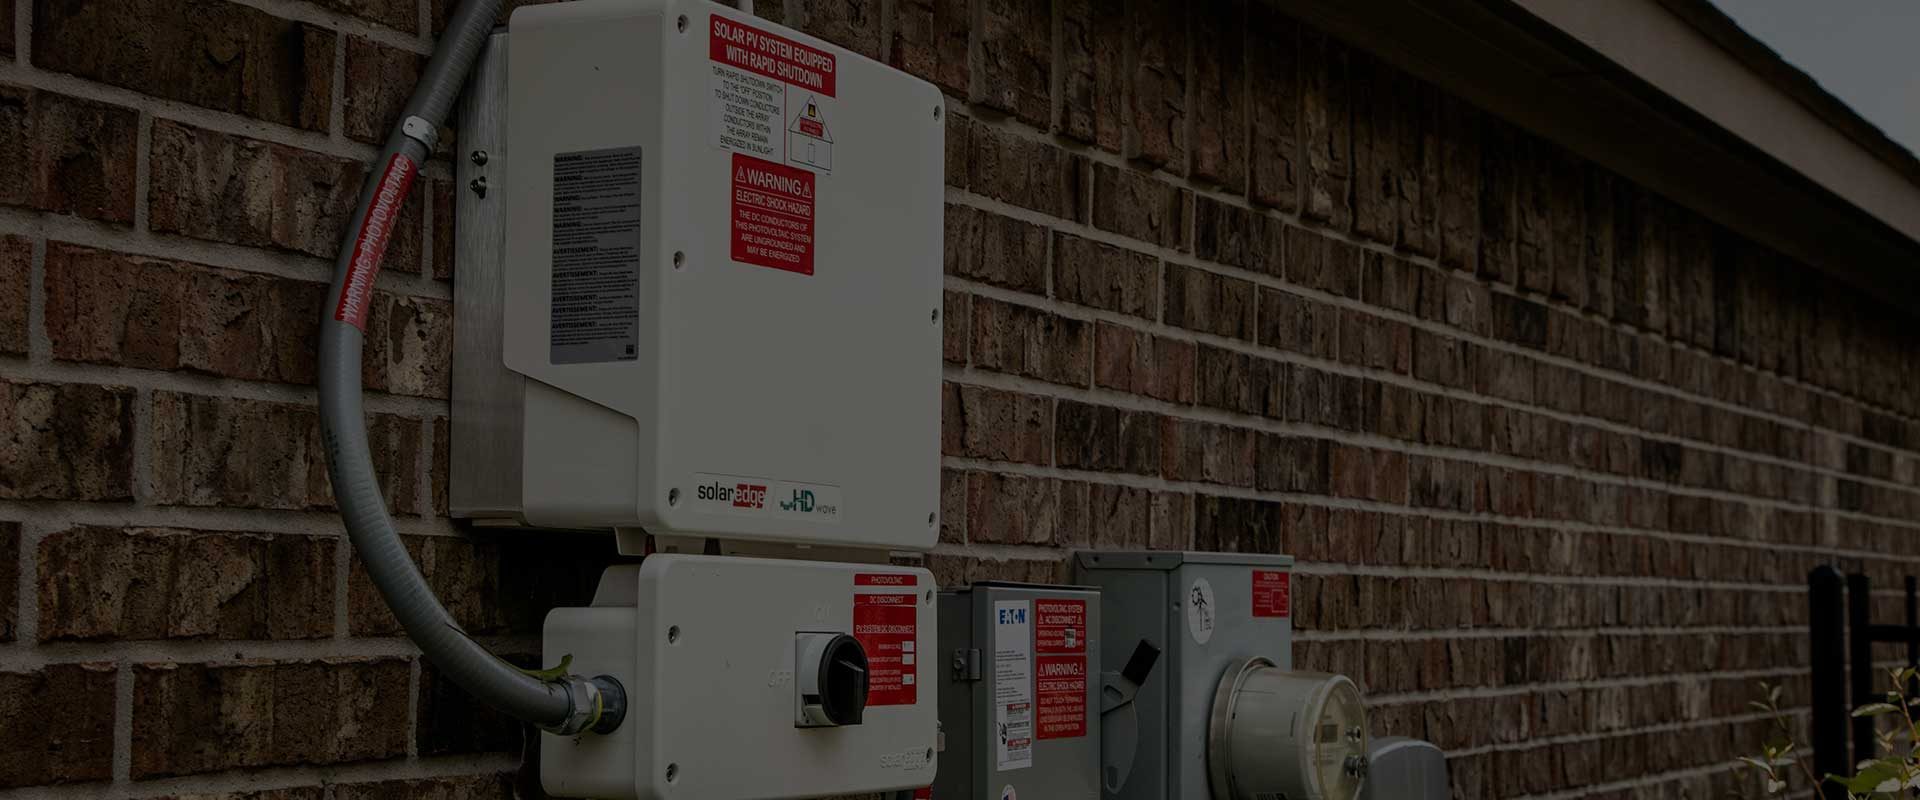 SolarEdge Inverters installed by Sunshine Renewable Solutions